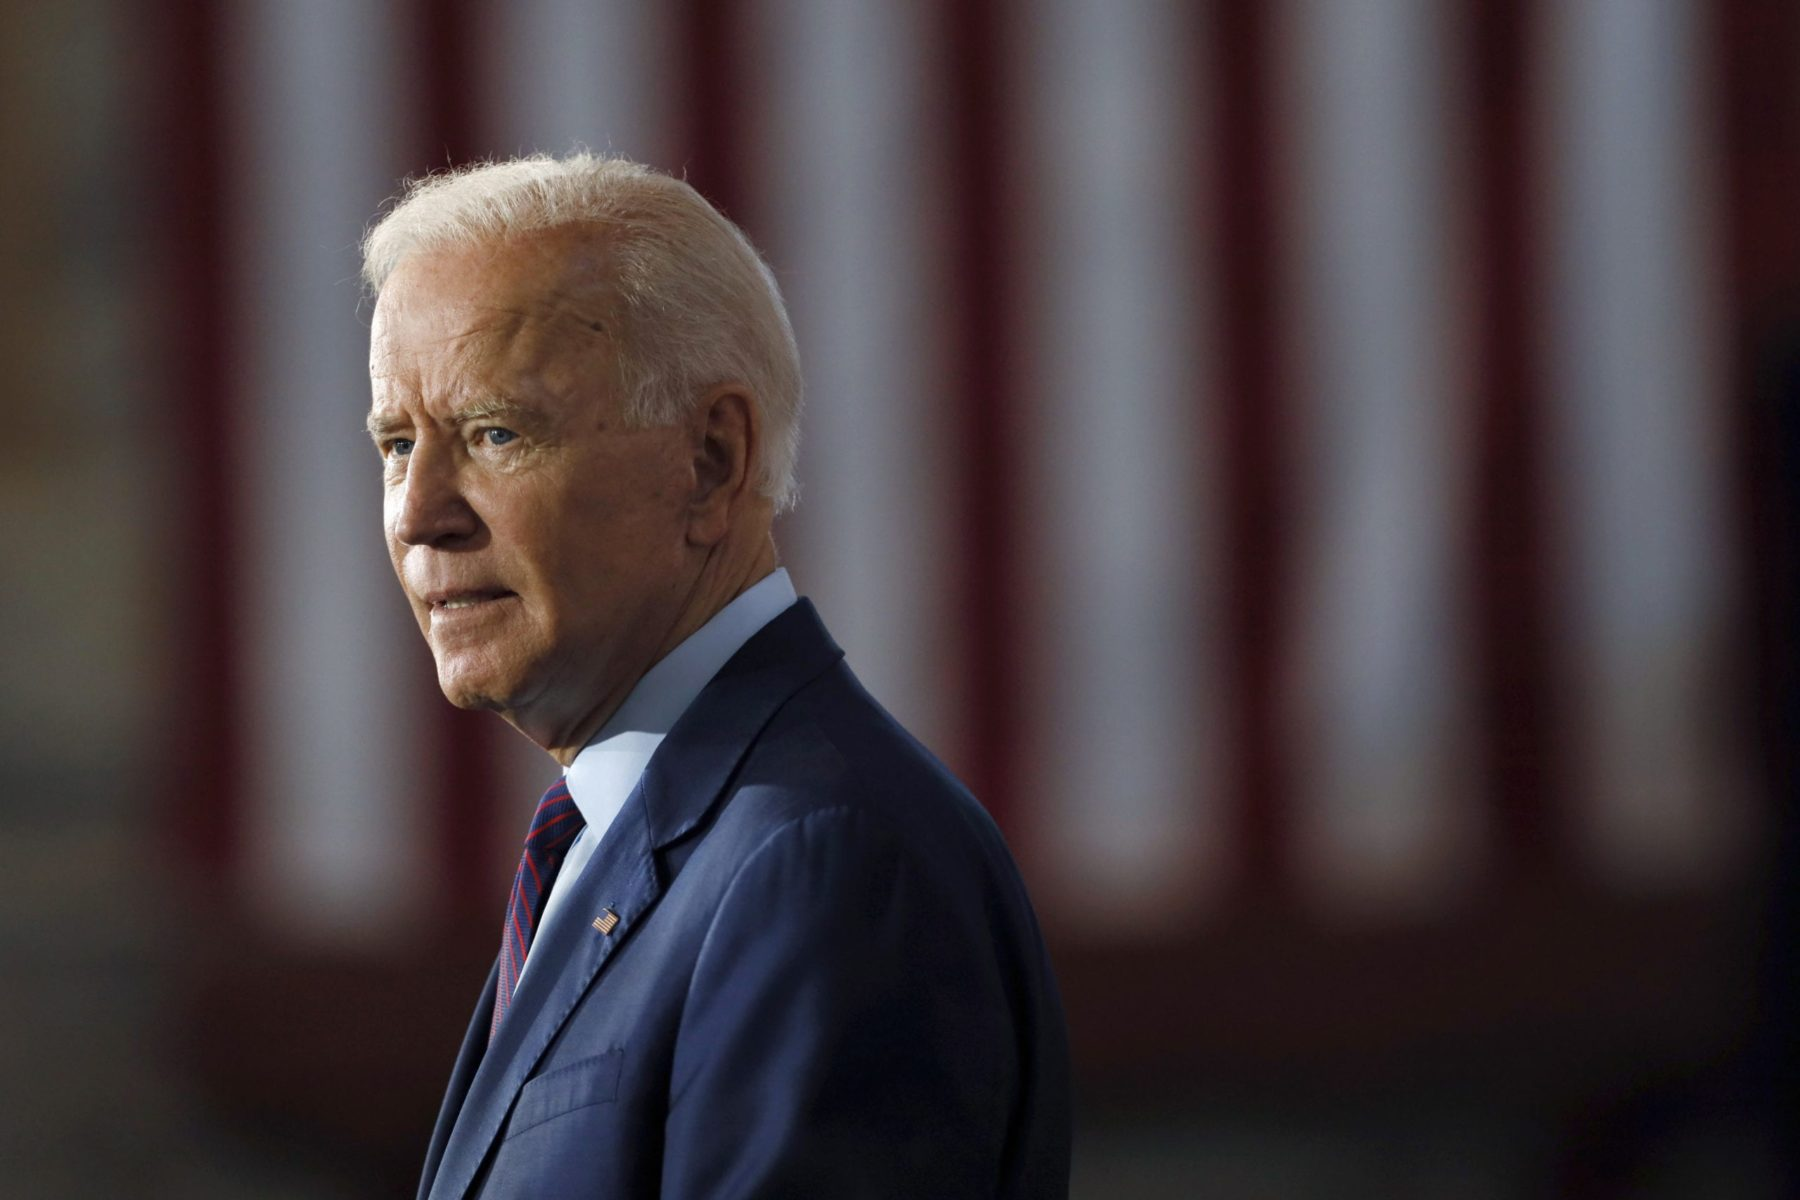 Joe Biden speaks in South Carolina